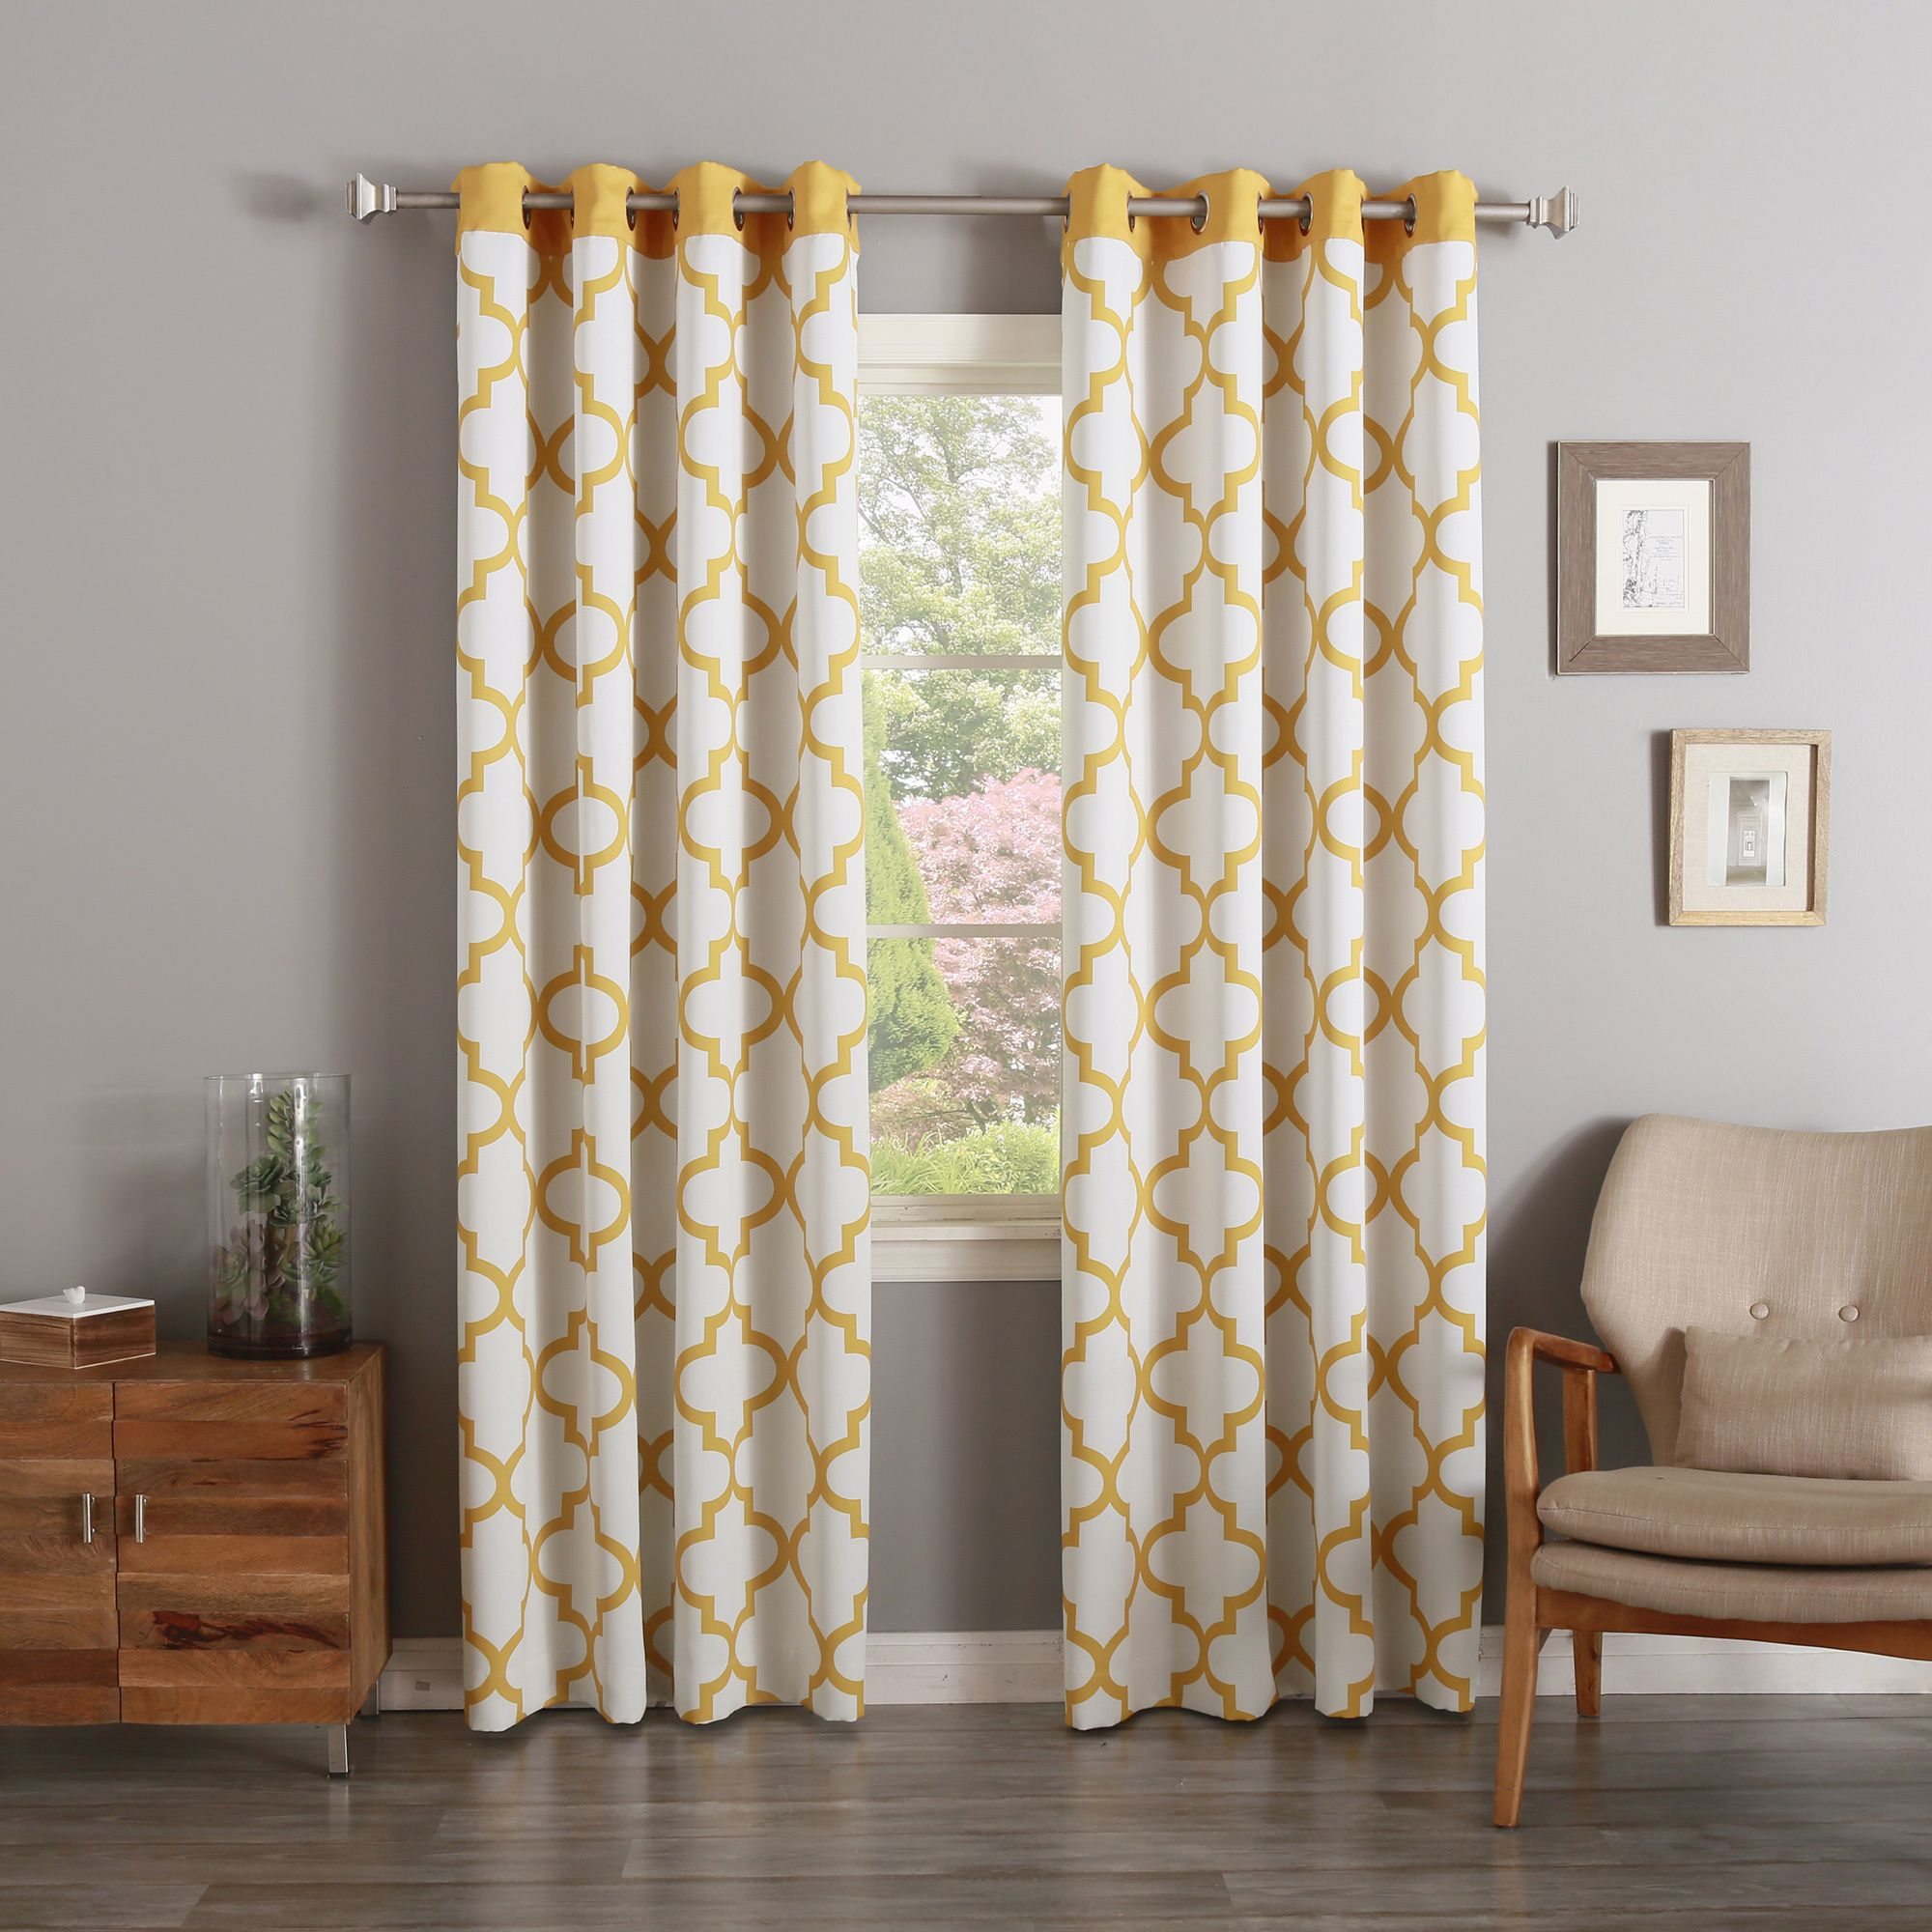 home white for decoration curtians grommet insulated design eclipse lovely curtains blocking linen of coral appealing homestyles target ruffle blackout ellery curtain ideas heat